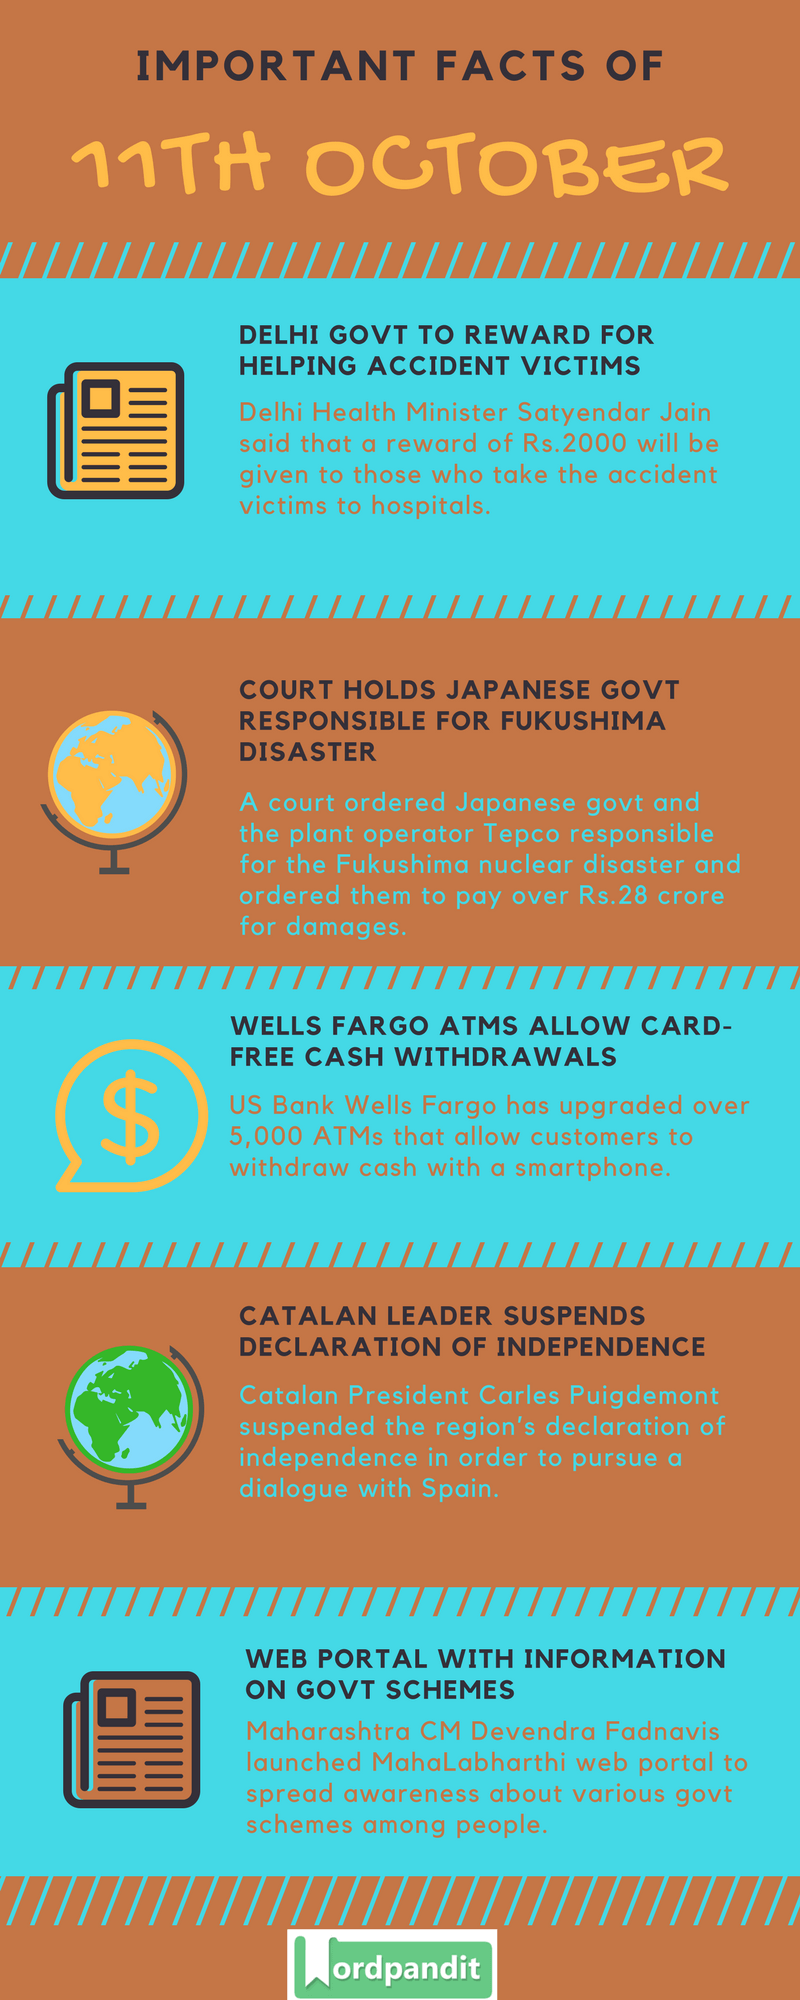 Daily-Current-Affairs-11-october-2017-Current-Affairs-Quiz-october-11-2017-Current-Affairs-Infographic